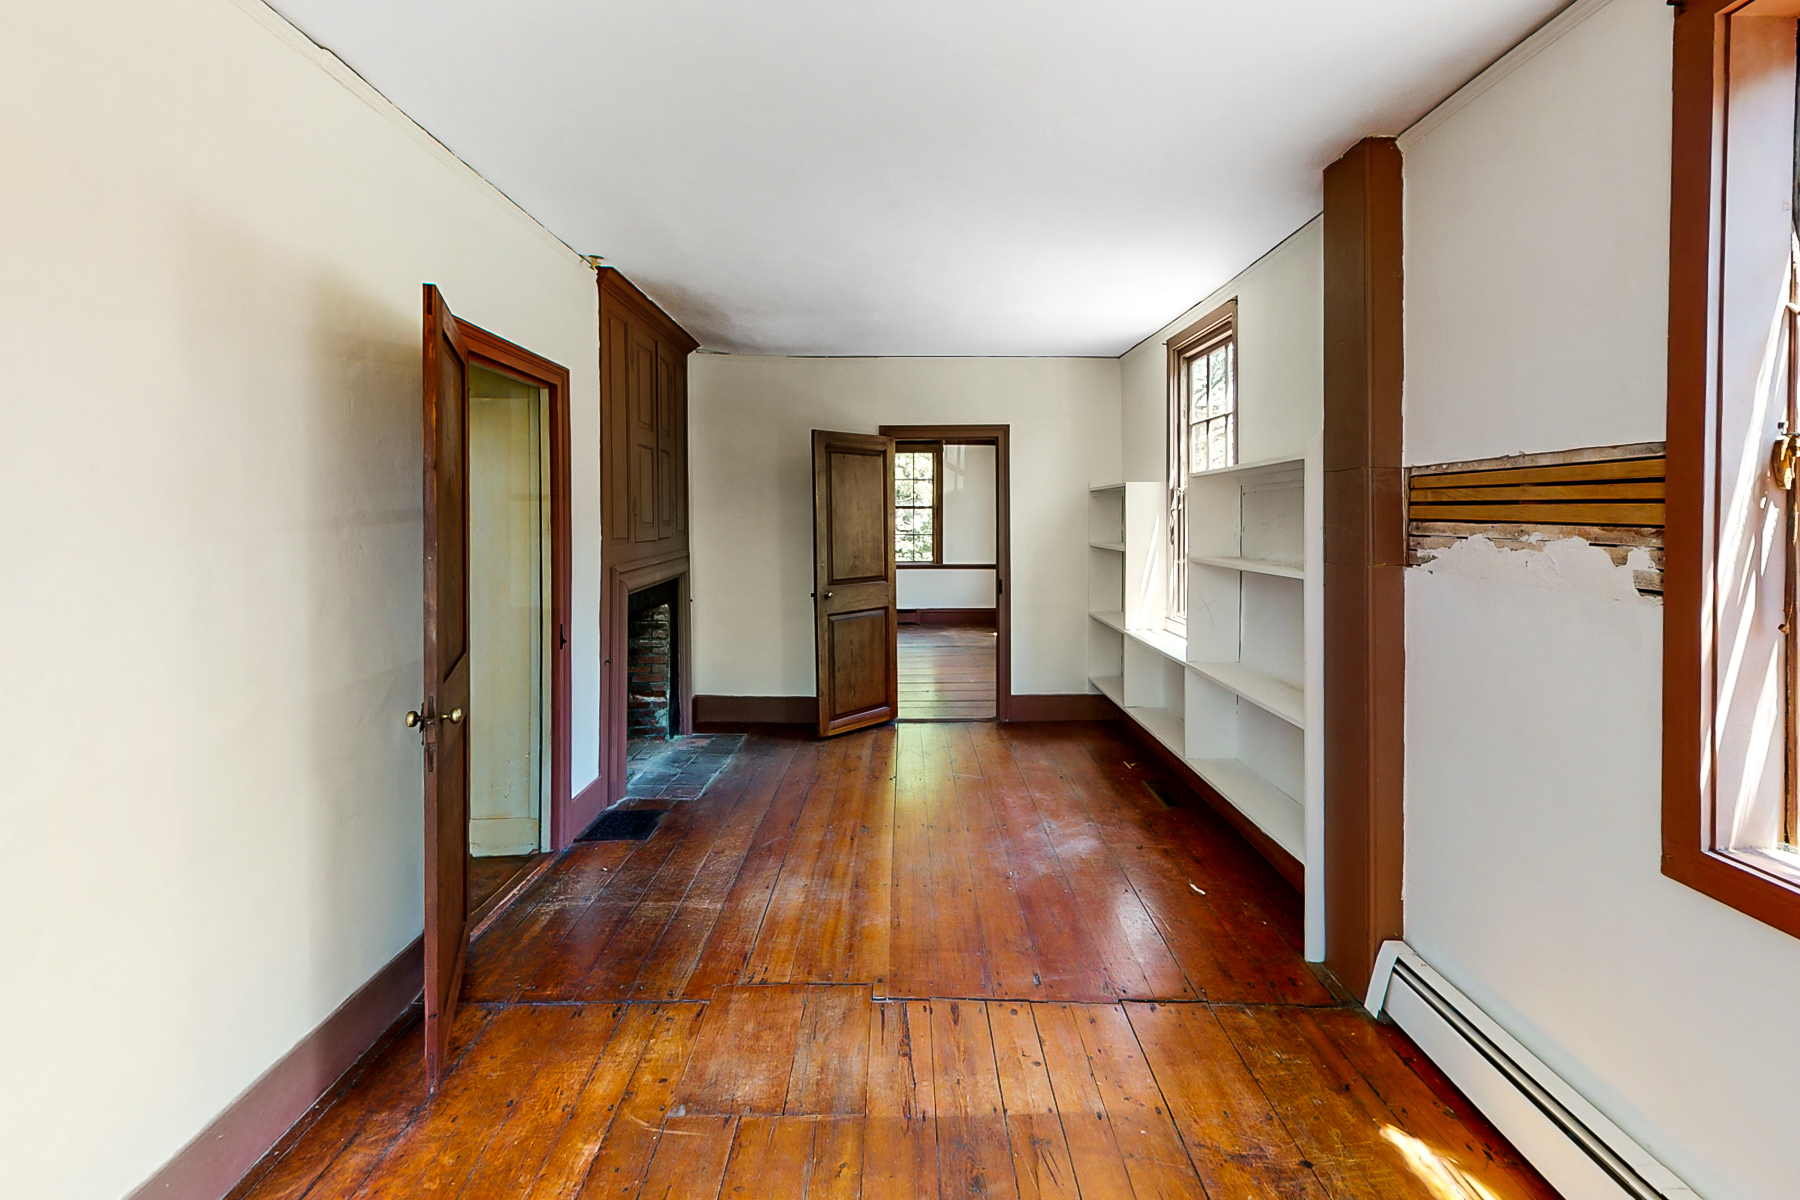 Additional photo for property listing at The Christopher Townsend House 74 Bridge Street Newport, Rhode Island 02840 United States